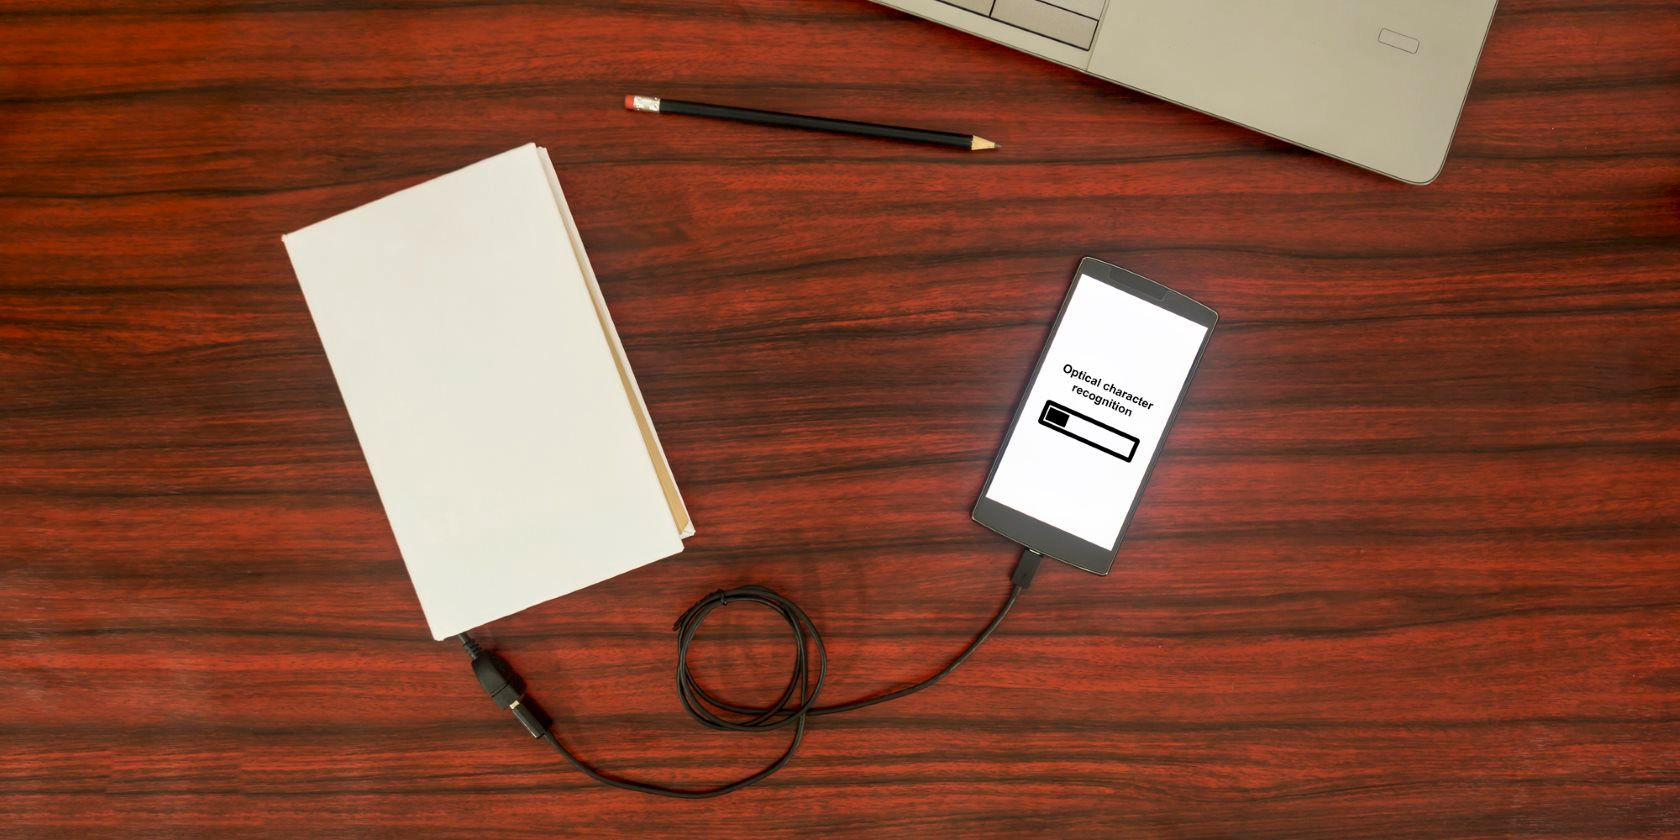 5 Tools To Extract Text From Scanned Documents